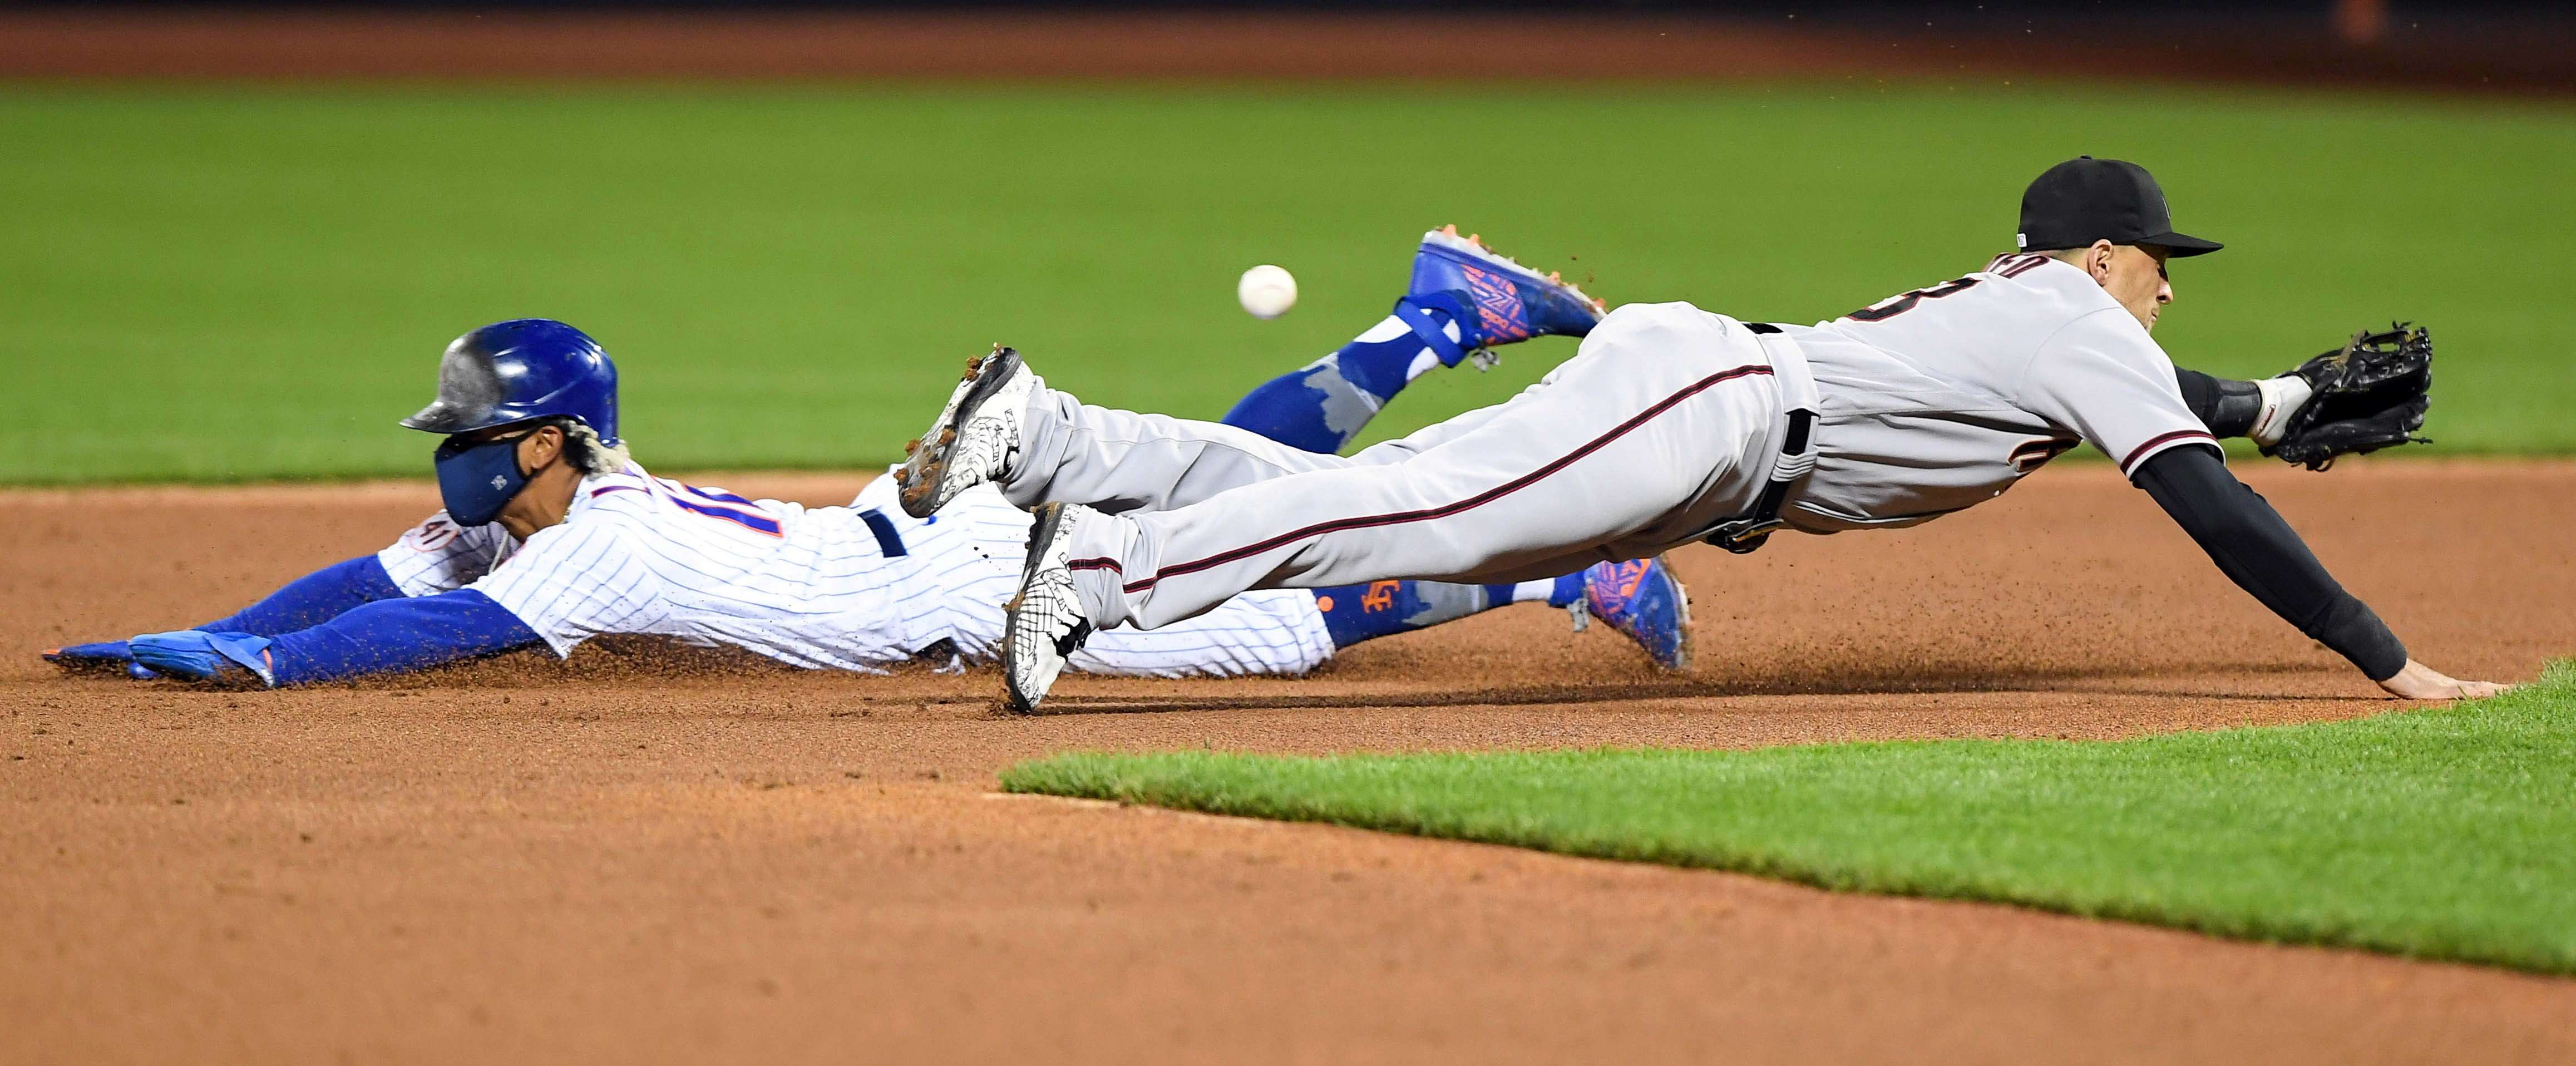 May 8, 2021; New York City, New York, USA; New York Mets shortstop Francisco Lindor (12) steals second base as Arizona Diamondbacks shortstop Nick Ahmed (13) dives for the ball in the third inning at Citi Field. Mandatory Credit: Dennis Schneidler-USA TODAY Sports     TPX IMAGES OF THE DAY - 16051466